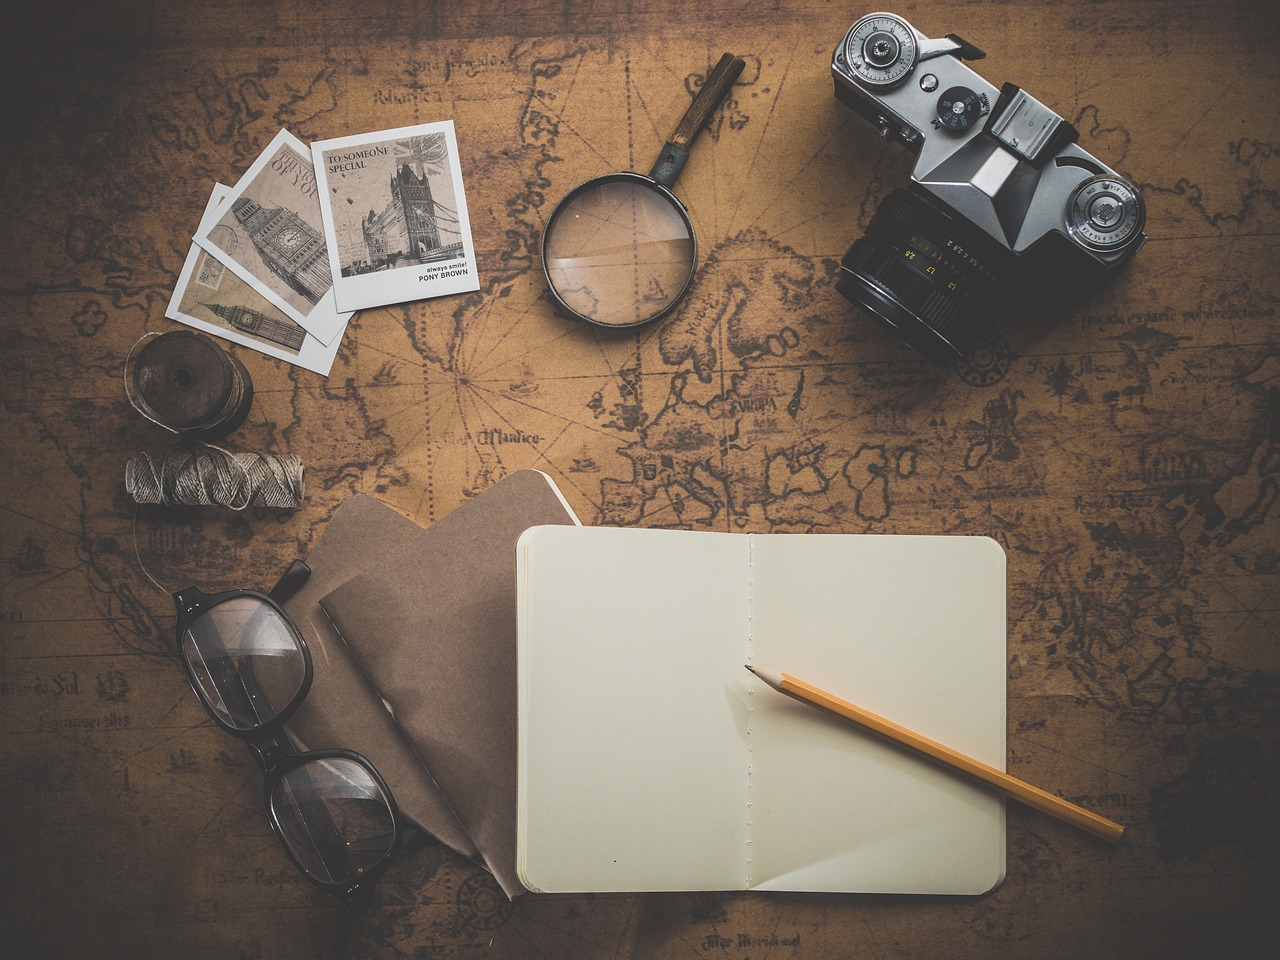 A notebook, pen, goggles, camera, magnifies, and a couple of stamp lying over world map